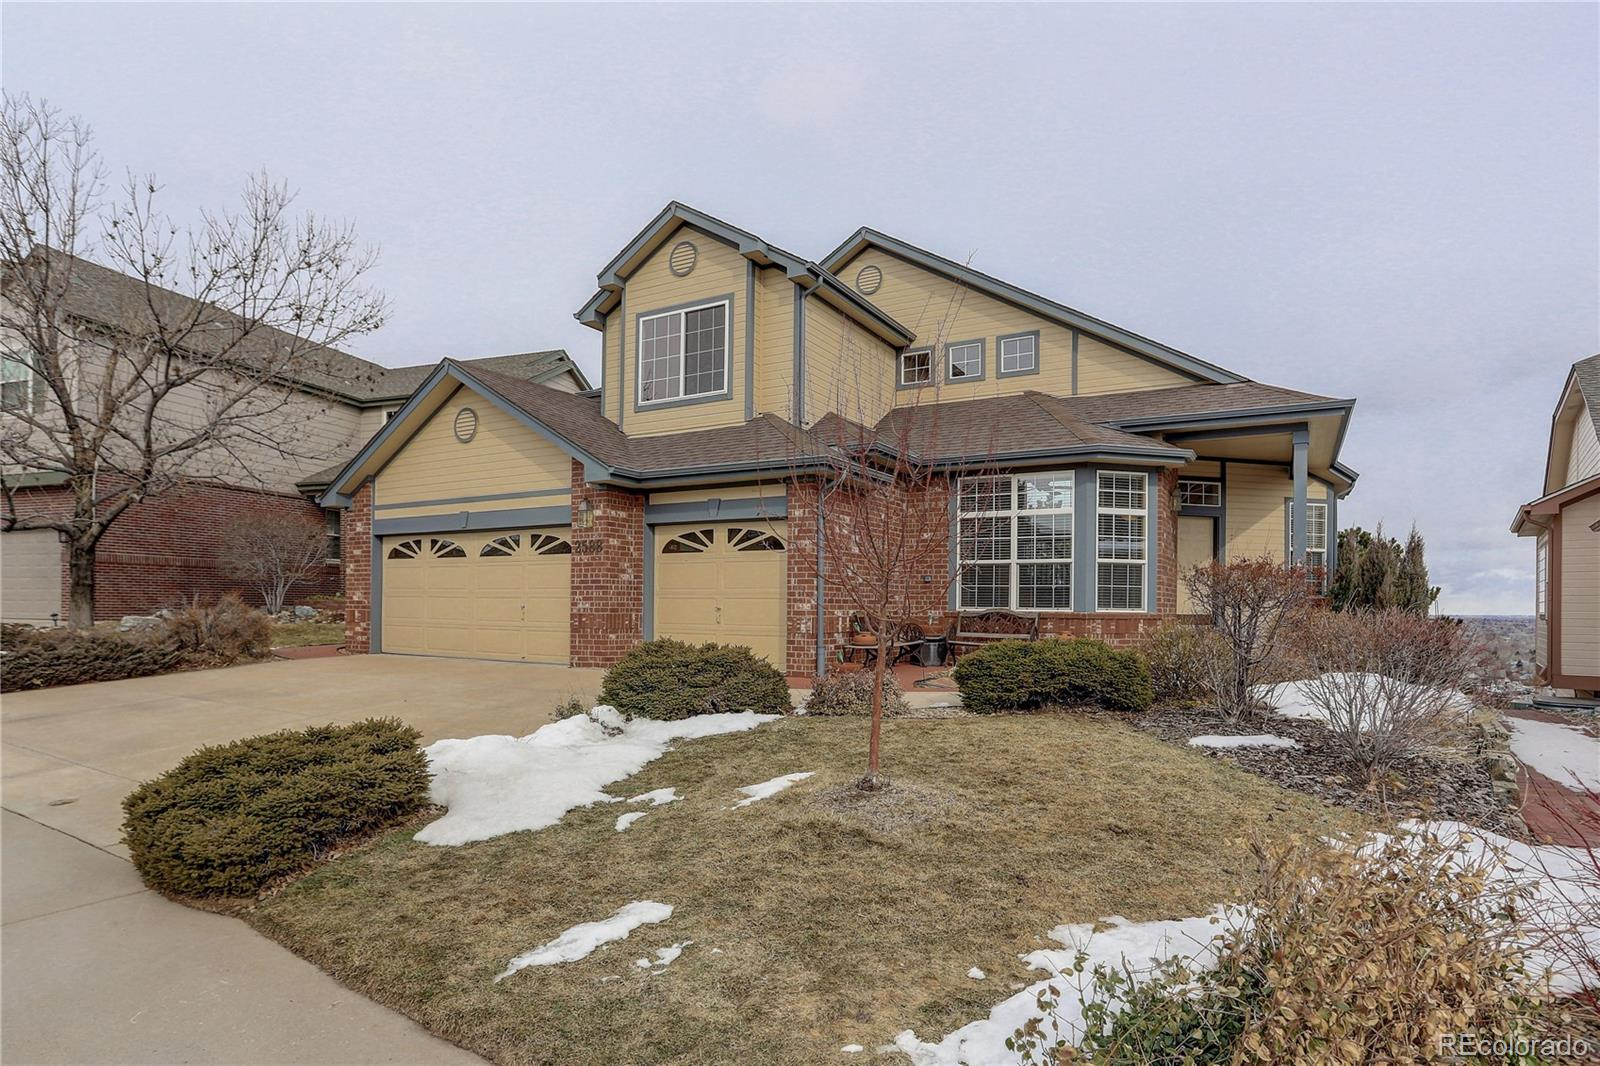 2588 S Newcombe Street Property Photo - Lakewood, CO real estate listing